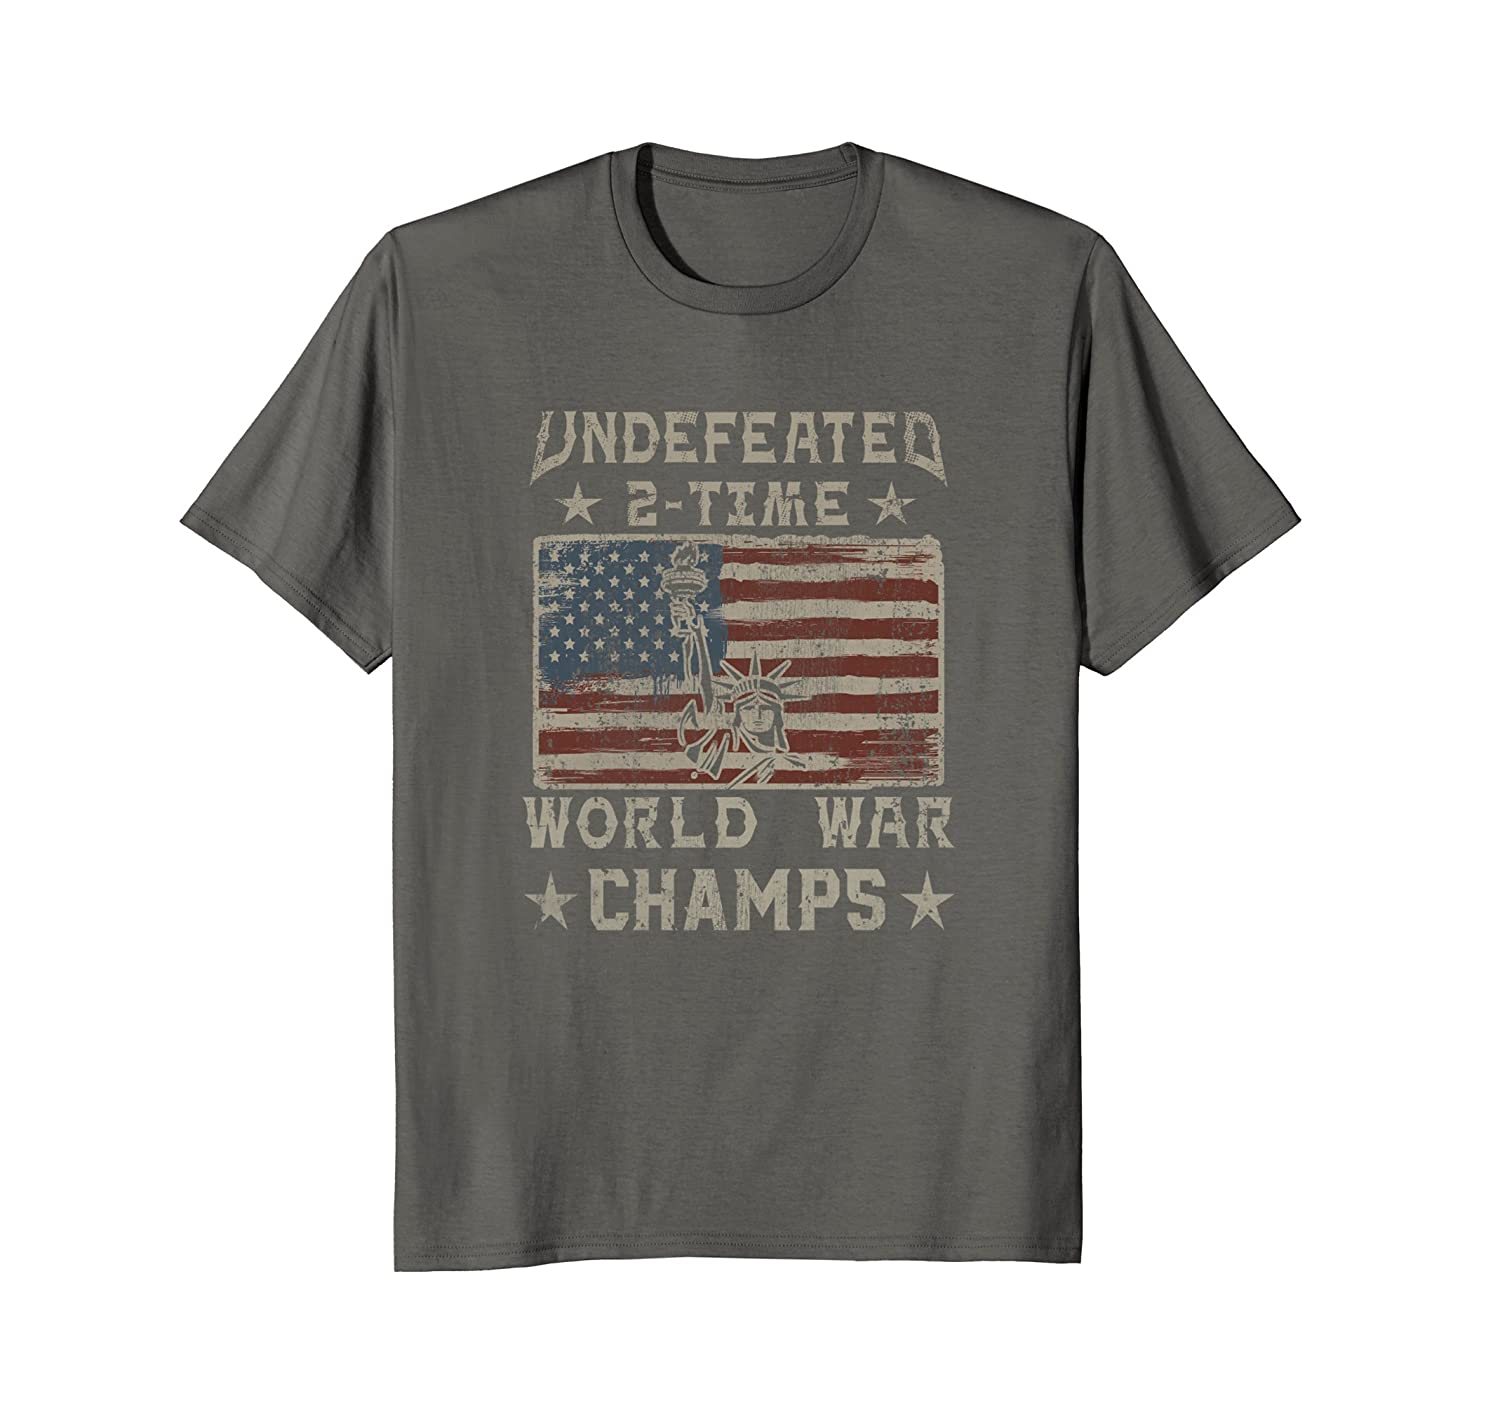 Undefeated 2 Time World War Champs July 4th Flag T-Shirt